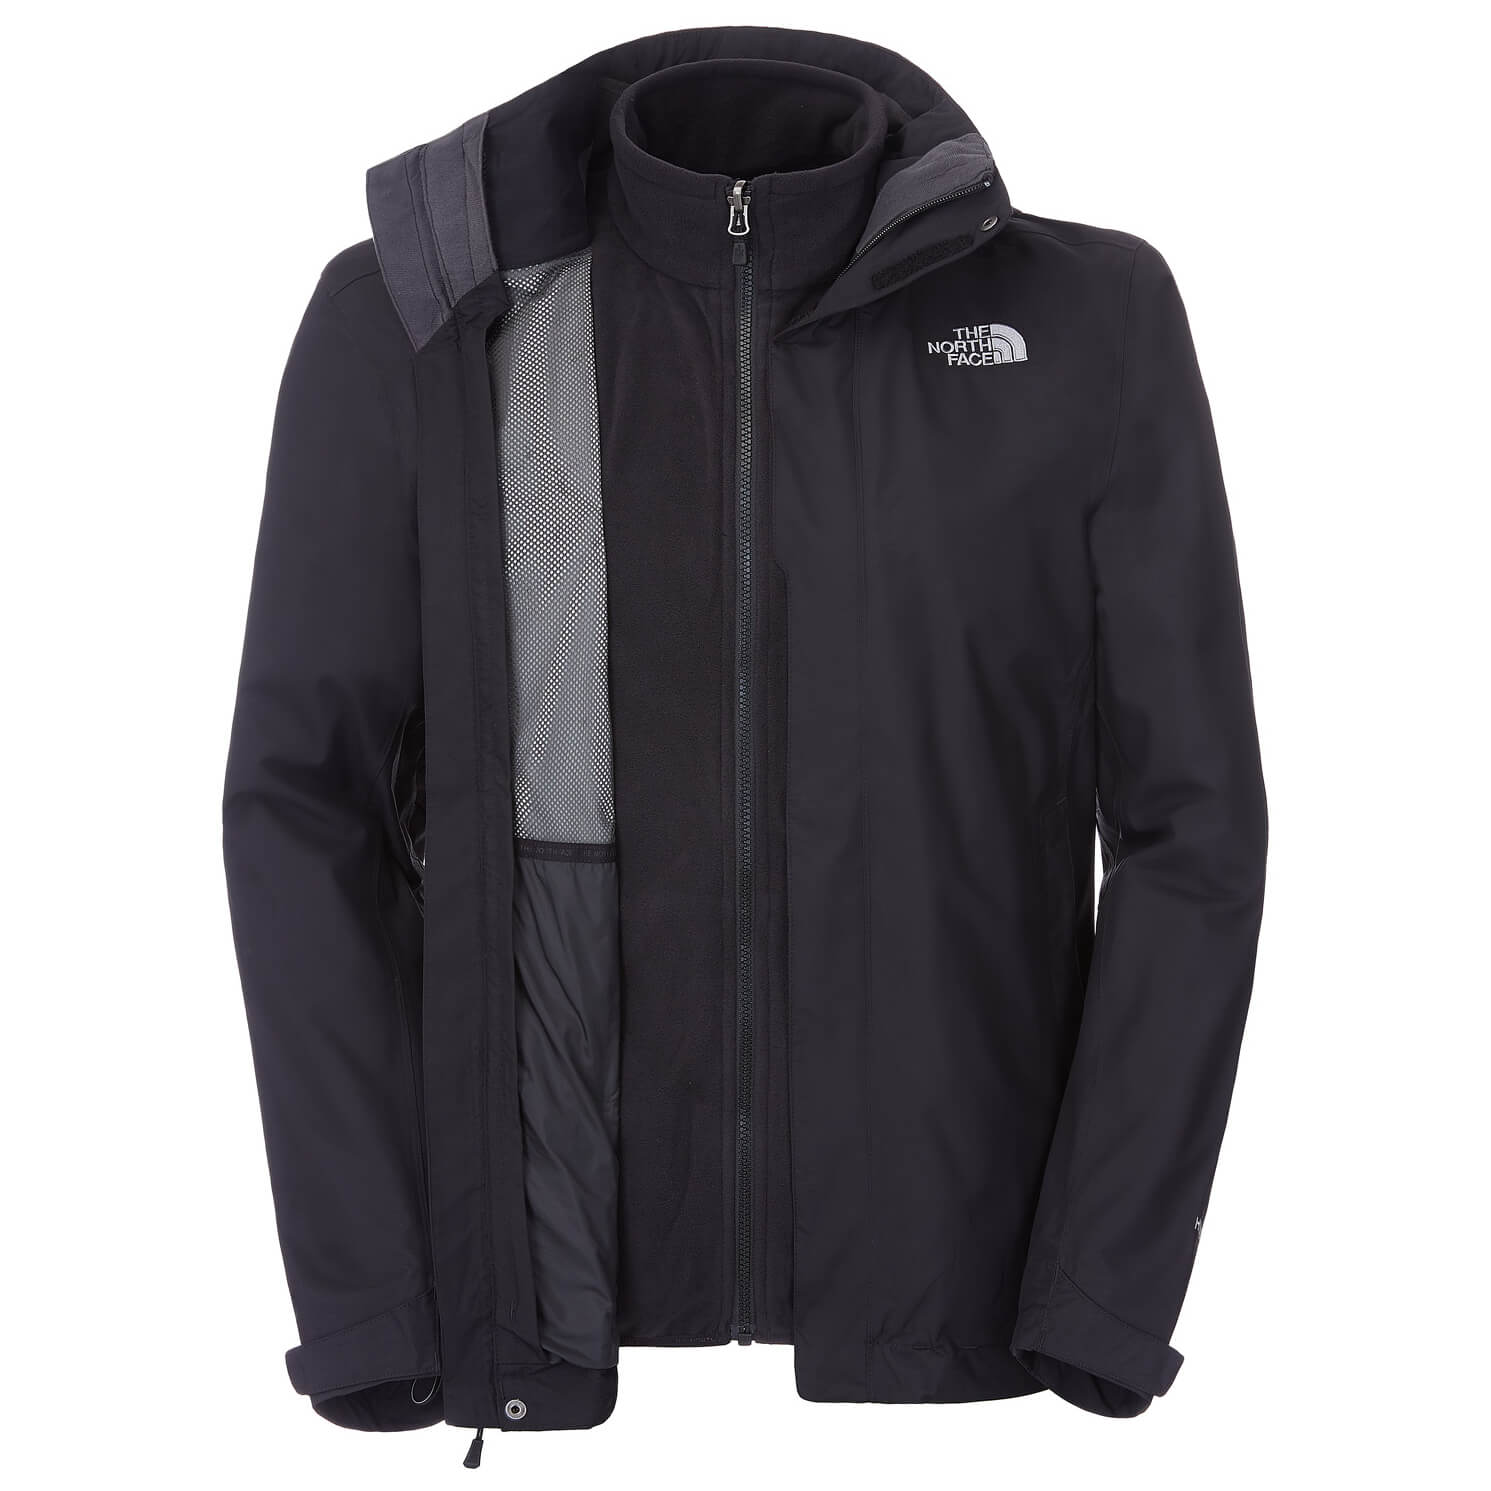 THE NORTH FACE Evolve II Triclimate 3 in 1 Hardshell Jacke S